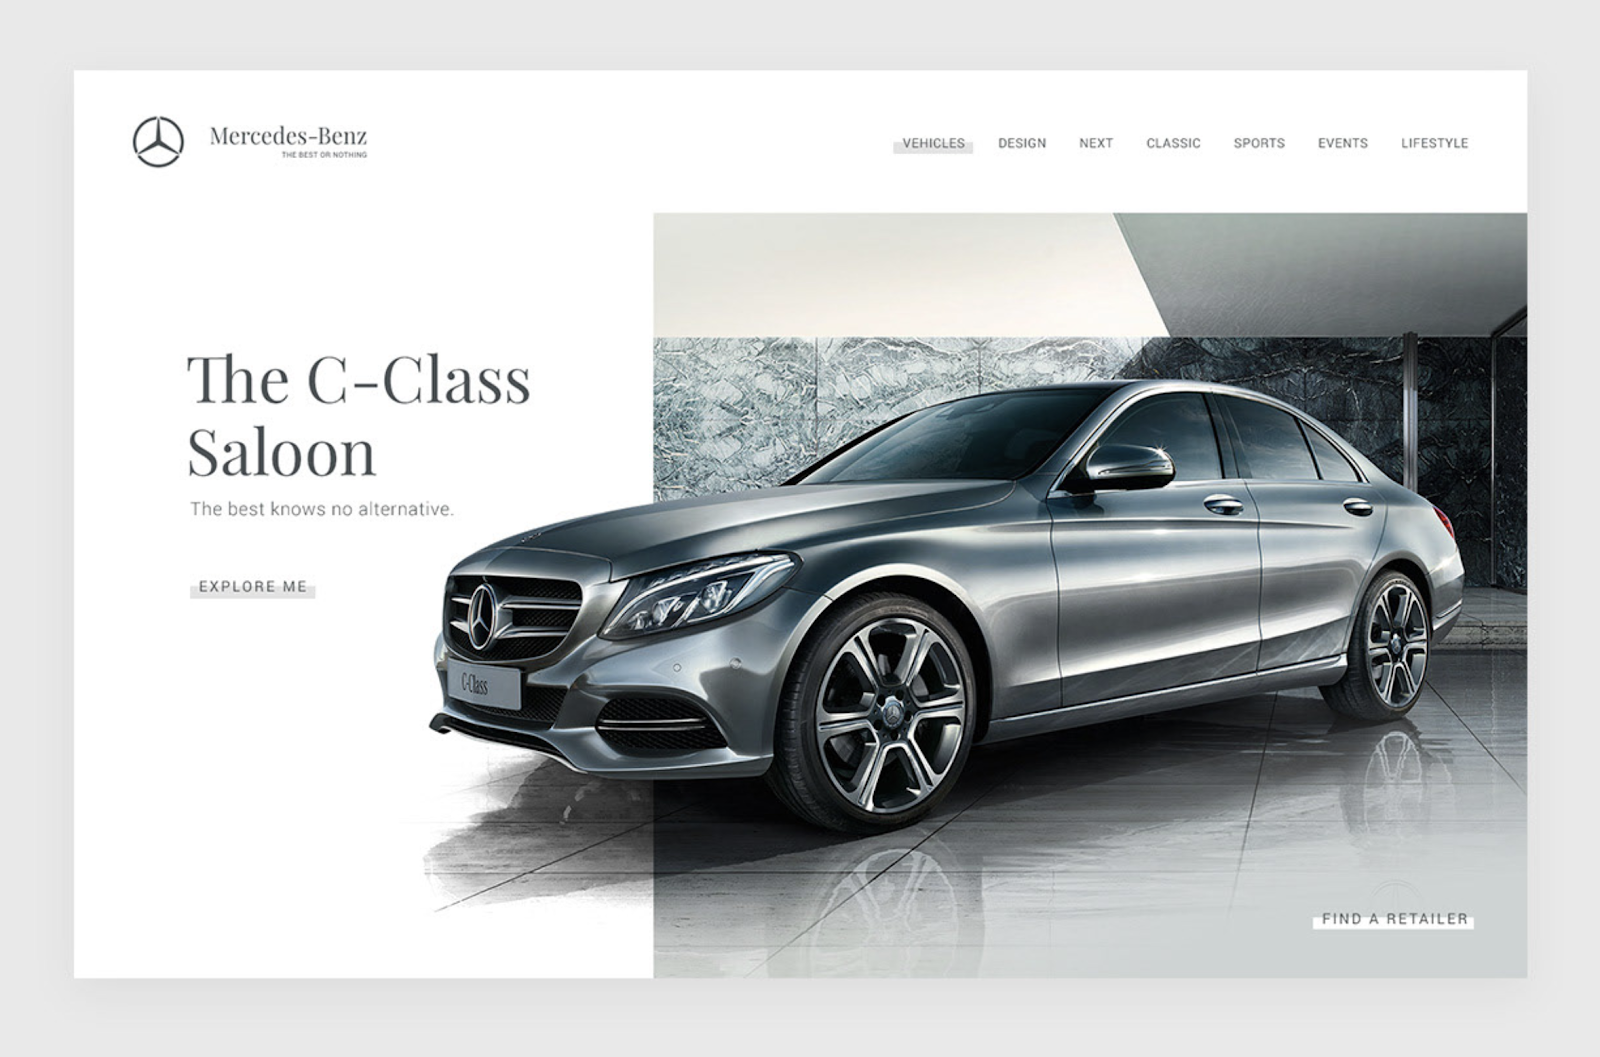 Mercedez C-Class landing page uses a grid layout but the vehicle ignores the grid to draw the users attention.